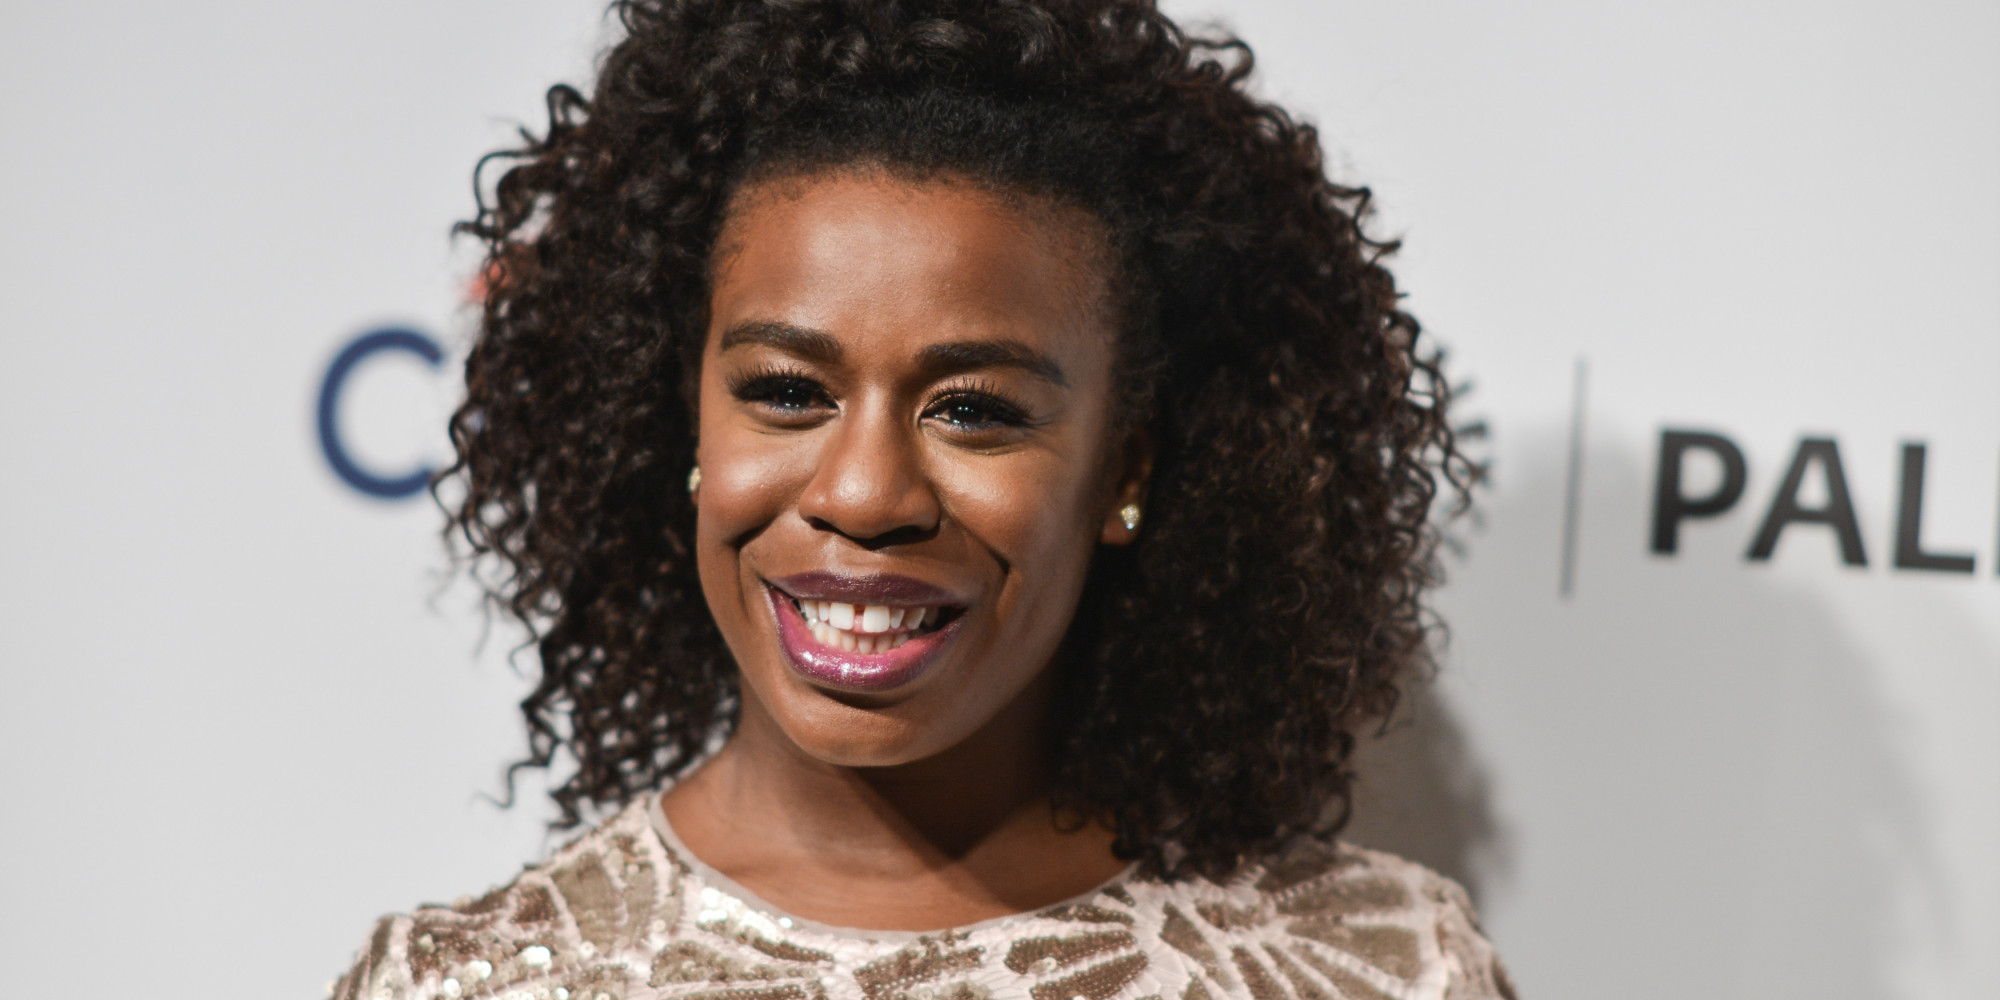 """Uzo Aduba arrives at PALEYFEST 2014 - """"Orange is the New Black"""" on Friday, March 14, 2014, in Los Angeles. (Photo by Richard Shotwell/Invision/AP)"""